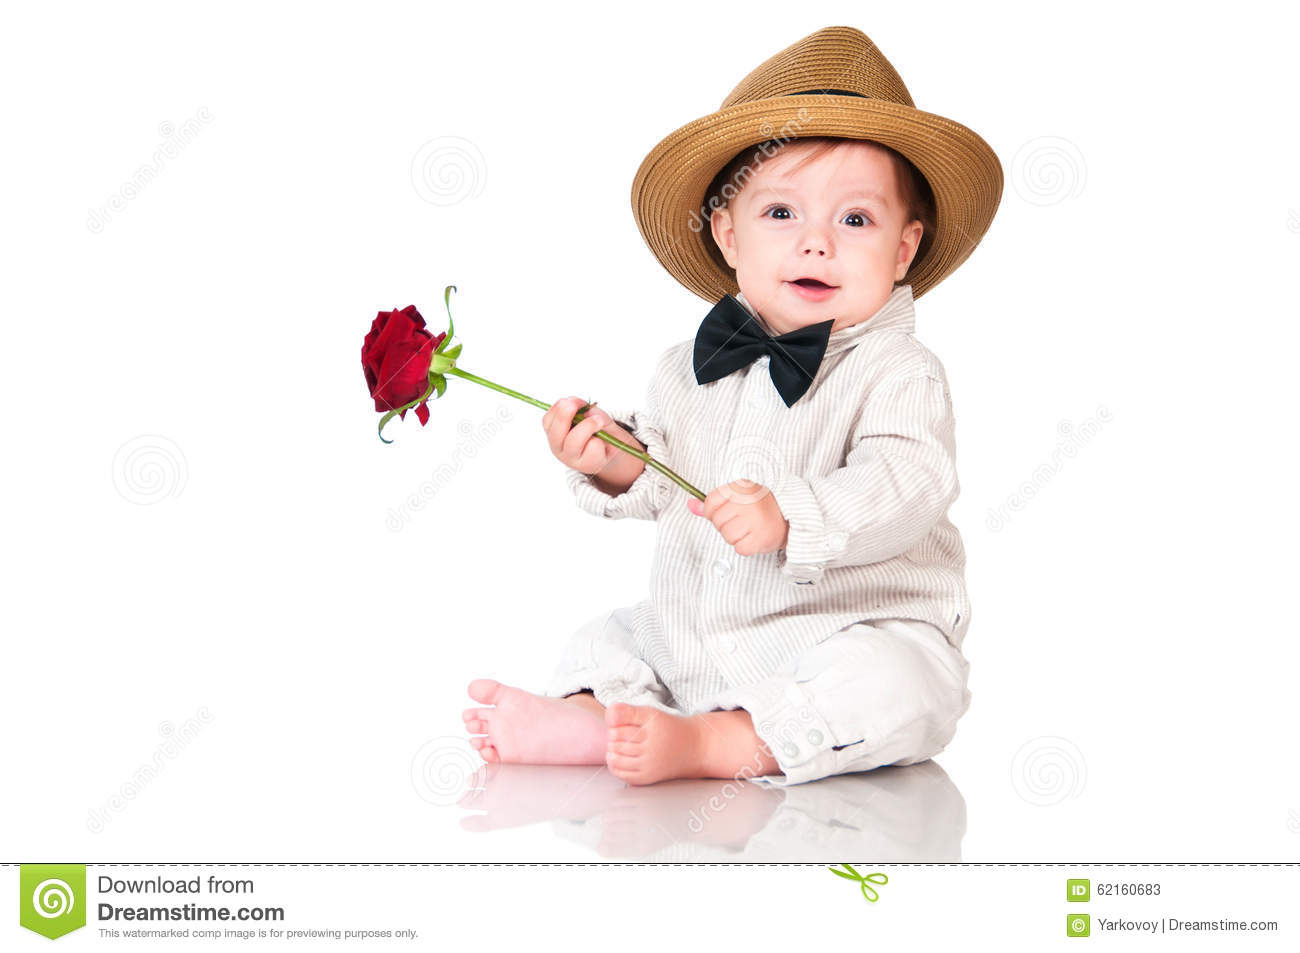 Smiling one old year boy in retro, bow-tie hat and with red rose sitting on white background.